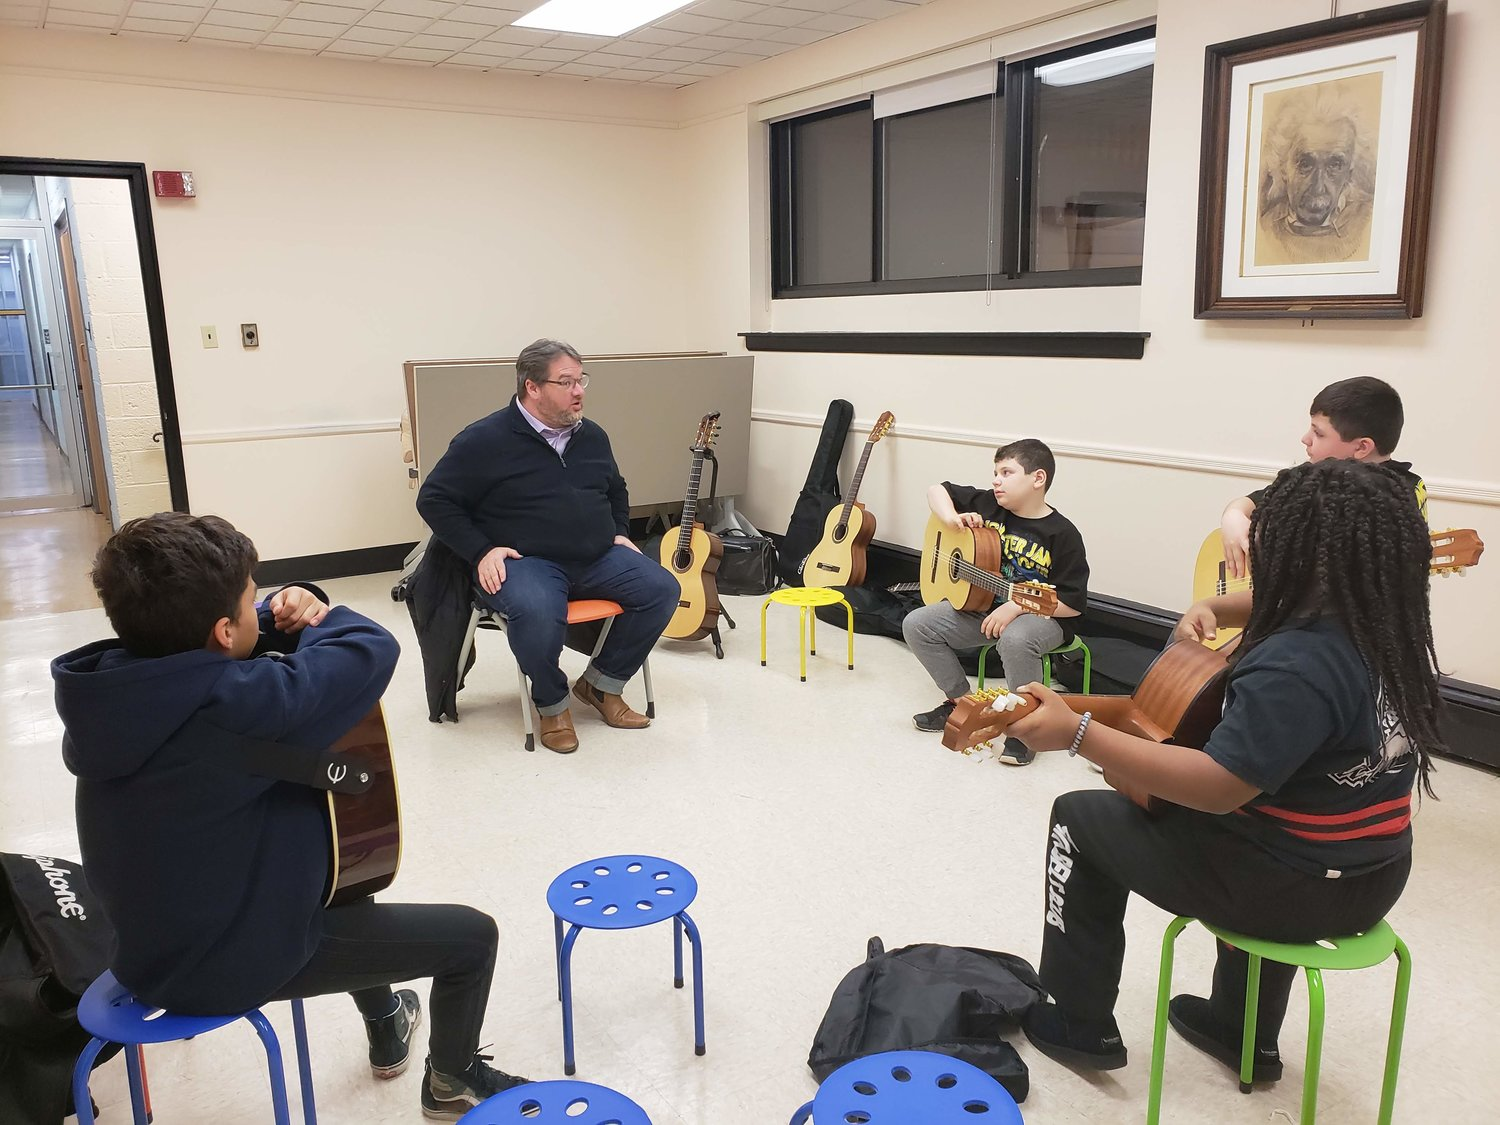 Guitar instructor Chris Gotzen-Berg, of the Legato Foundation, reviewed the goals for the eight-week-long class with students on the first night of lessons at the Freeport Memorial Library on Jan. 28.